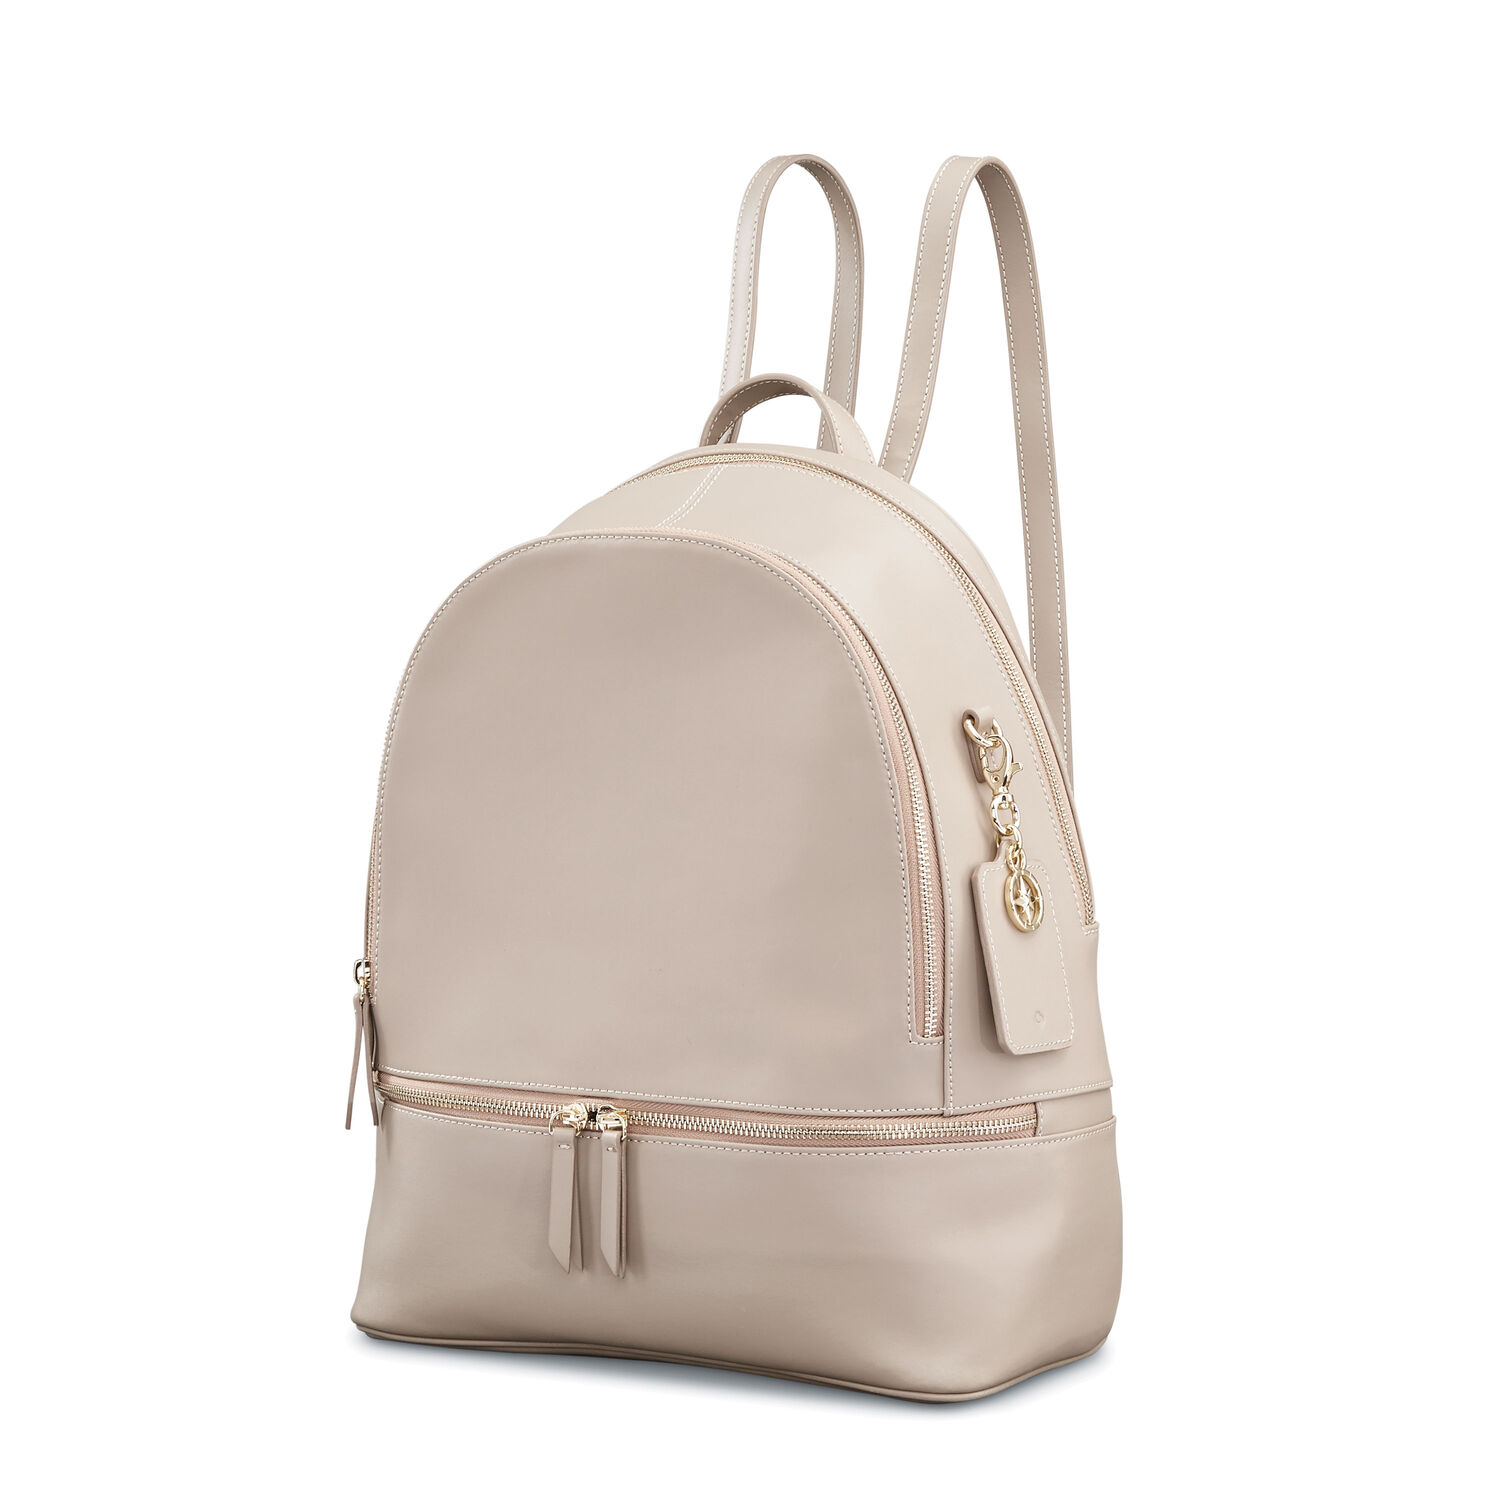 Samsonite Ladies Leather City Backpack in the color Light Grey.